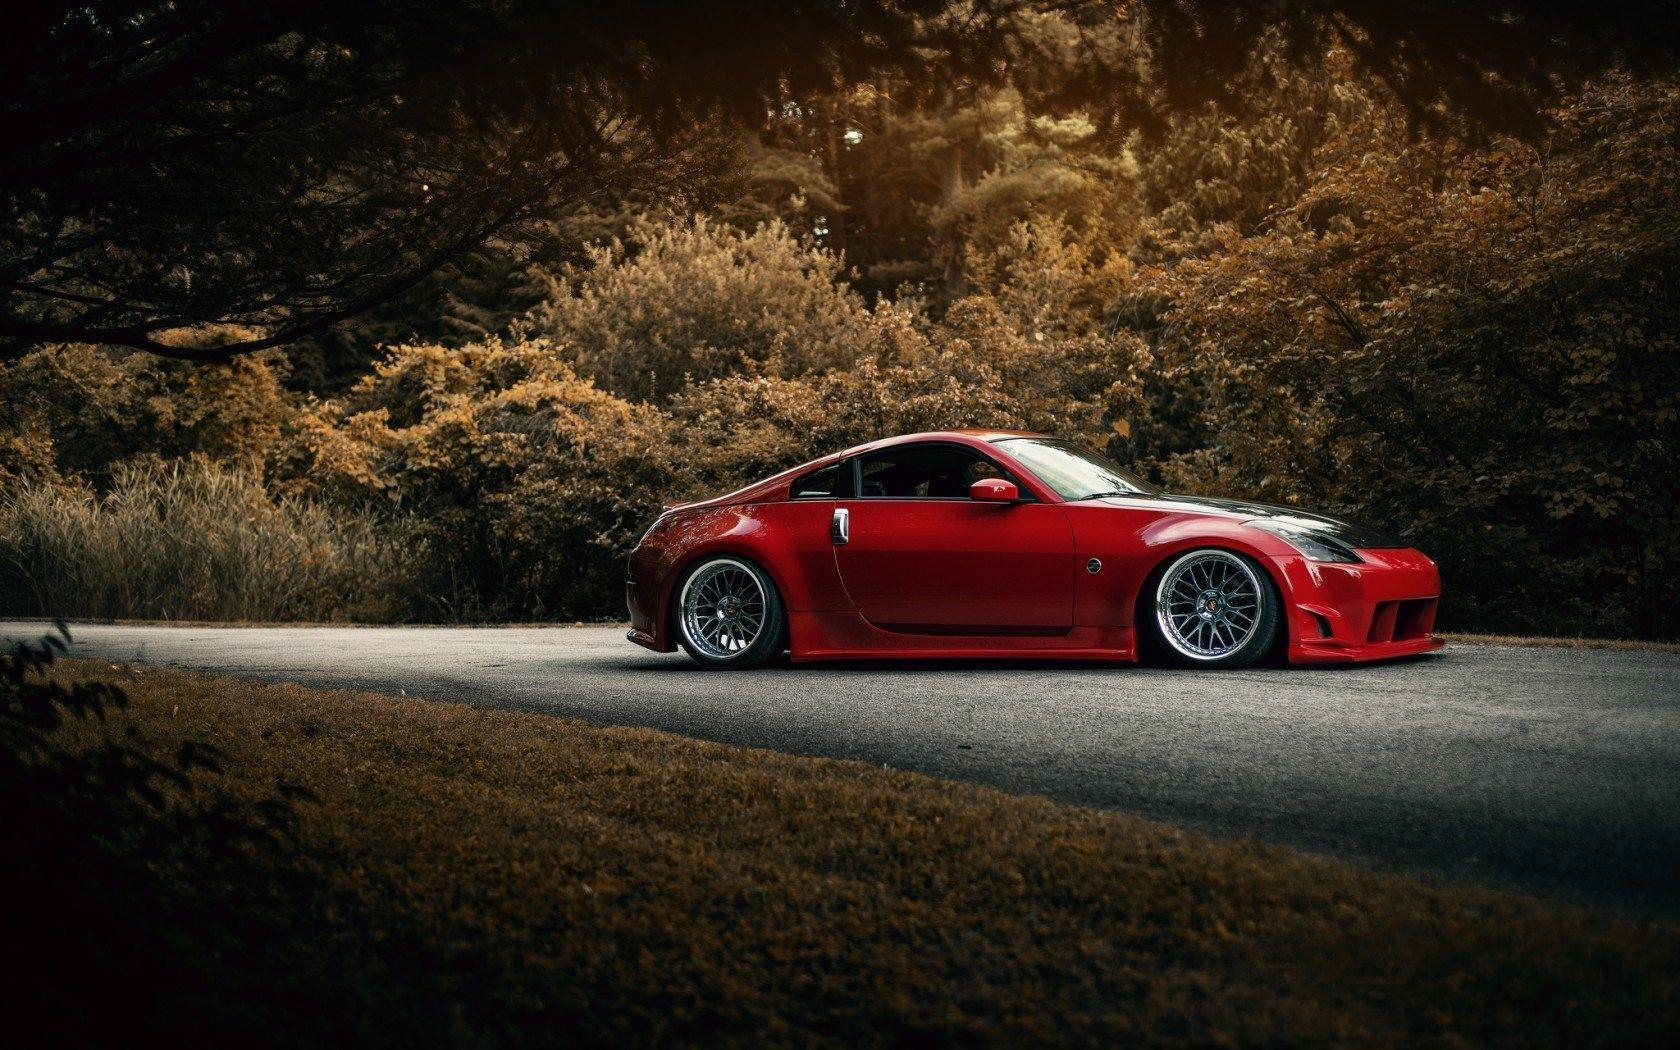 Nissan 350z Red Stance Nissan Red Before Wallpaper Photos | Fast Cars